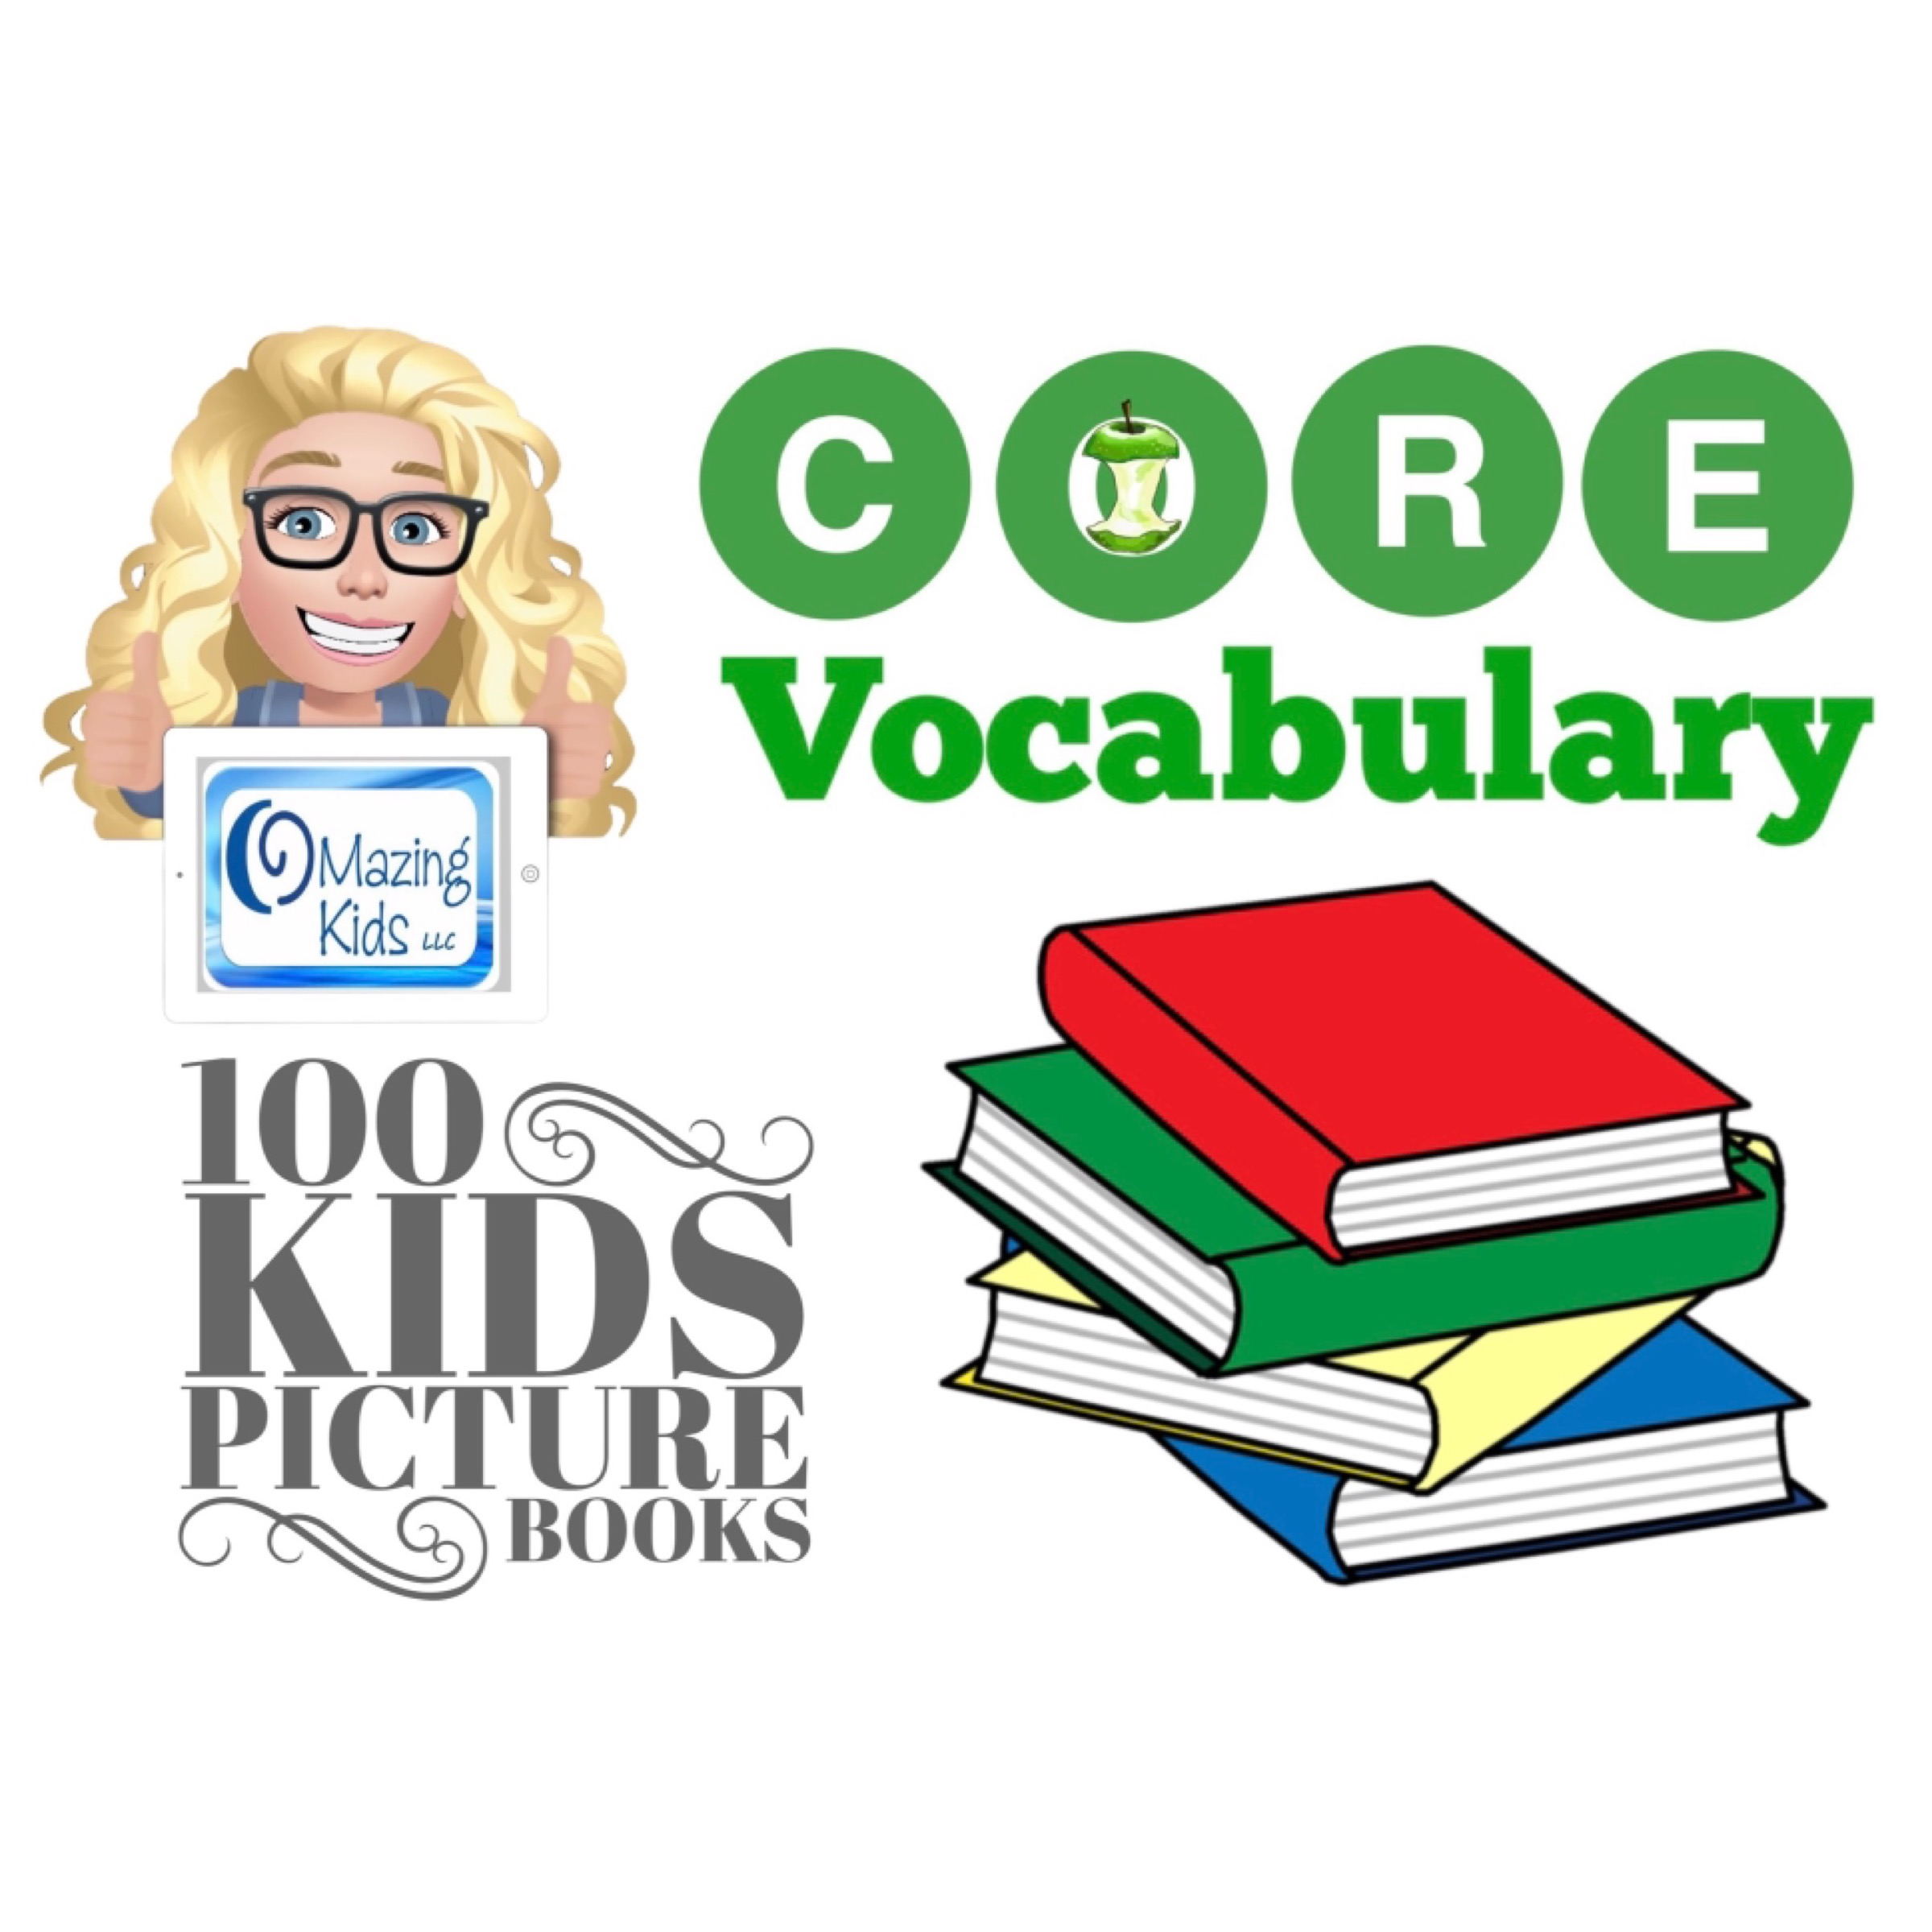 100 great kids picture books to target Core Vocabulary for AAC users - cover image